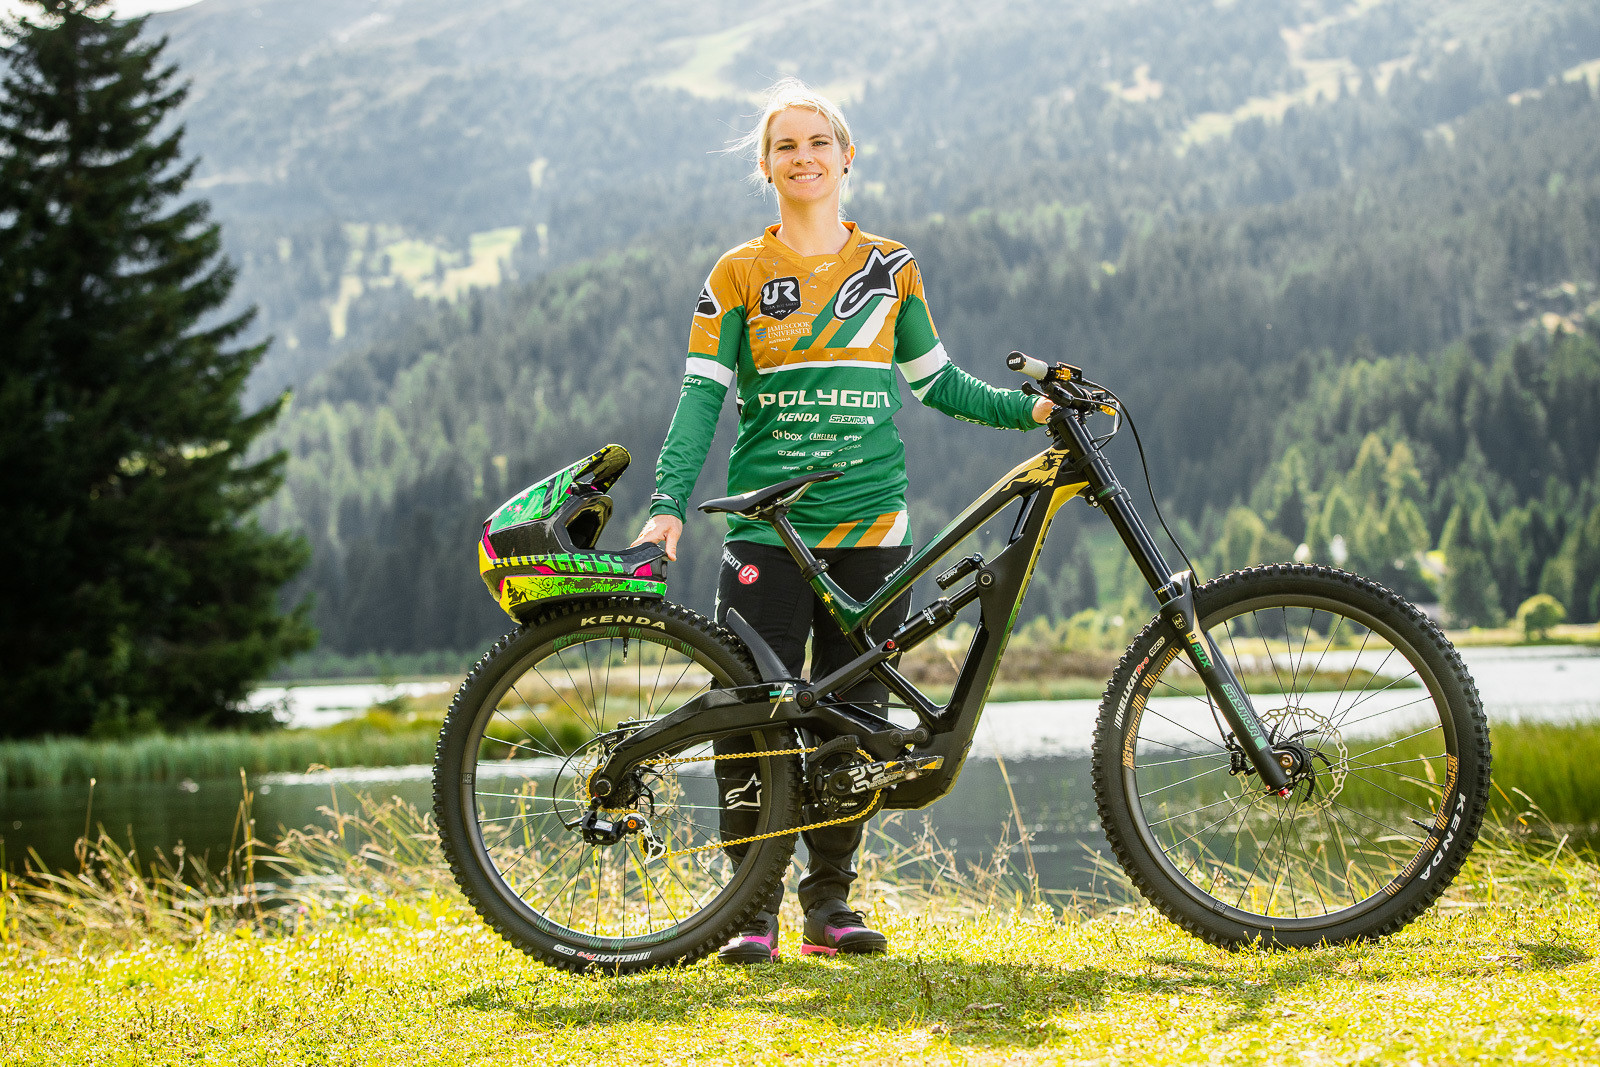 GET 'EM TRACEY! - WORLD CHAMPS BIKES - Mick & Tracey Hannah's Polygons - Mountain Biking Pictures - Vital MTB